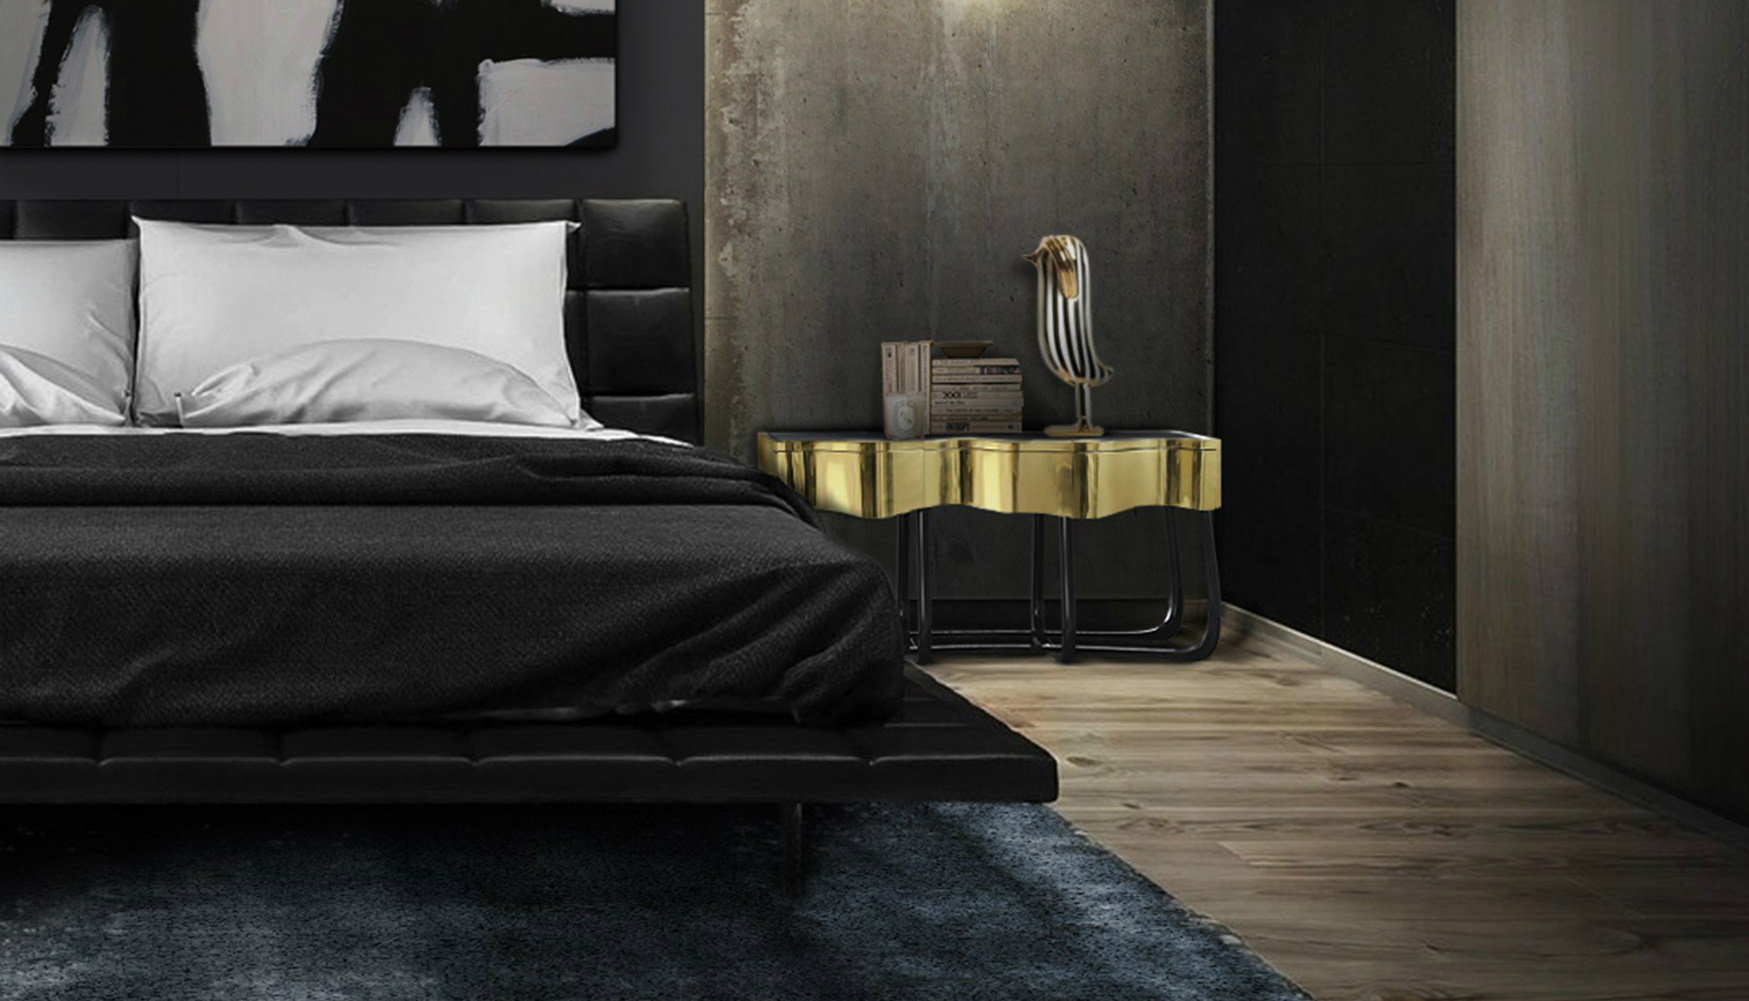 IMM Cologne 2018 Ideas de Diseño de Interiores para Tomar de IMM Cologne 2018 SINUOUS Nightstand Boca do Lobo 221322 reldeec8c61